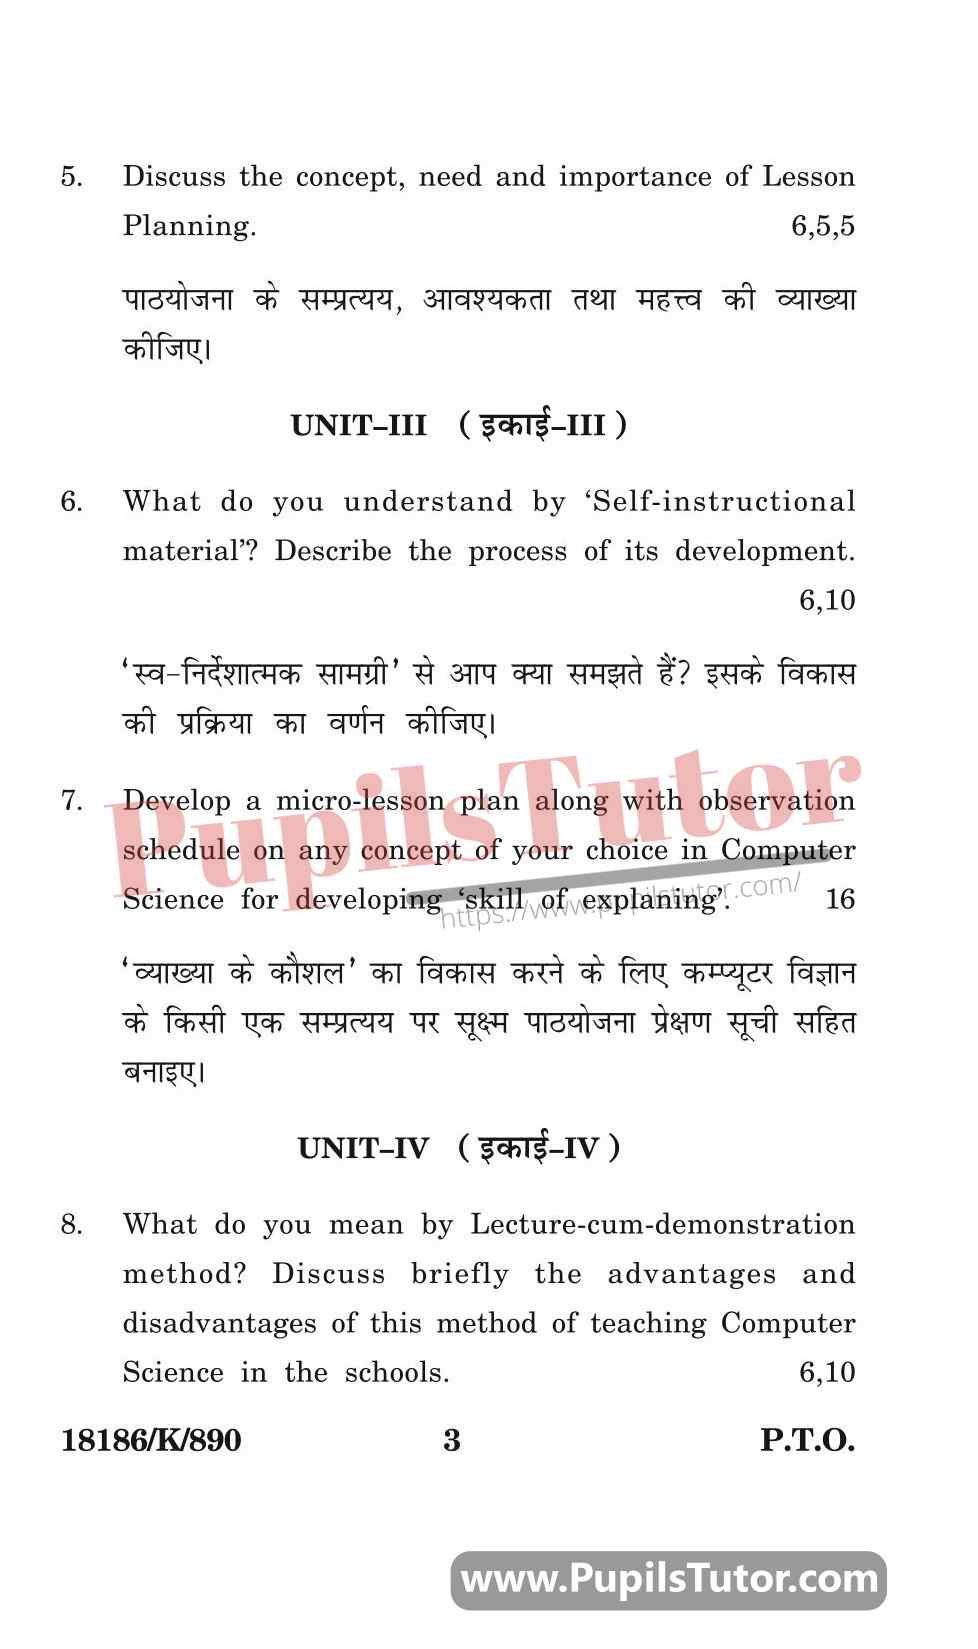 KUK (Kurukshetra University, Haryana) Pedagogy Of Computer Science Question Paper 2020 For B.Ed 1st And 2nd Year And All The 4 Semesters In English And Hindi Medium Free Download PDF - Page 3 - pupilstutor